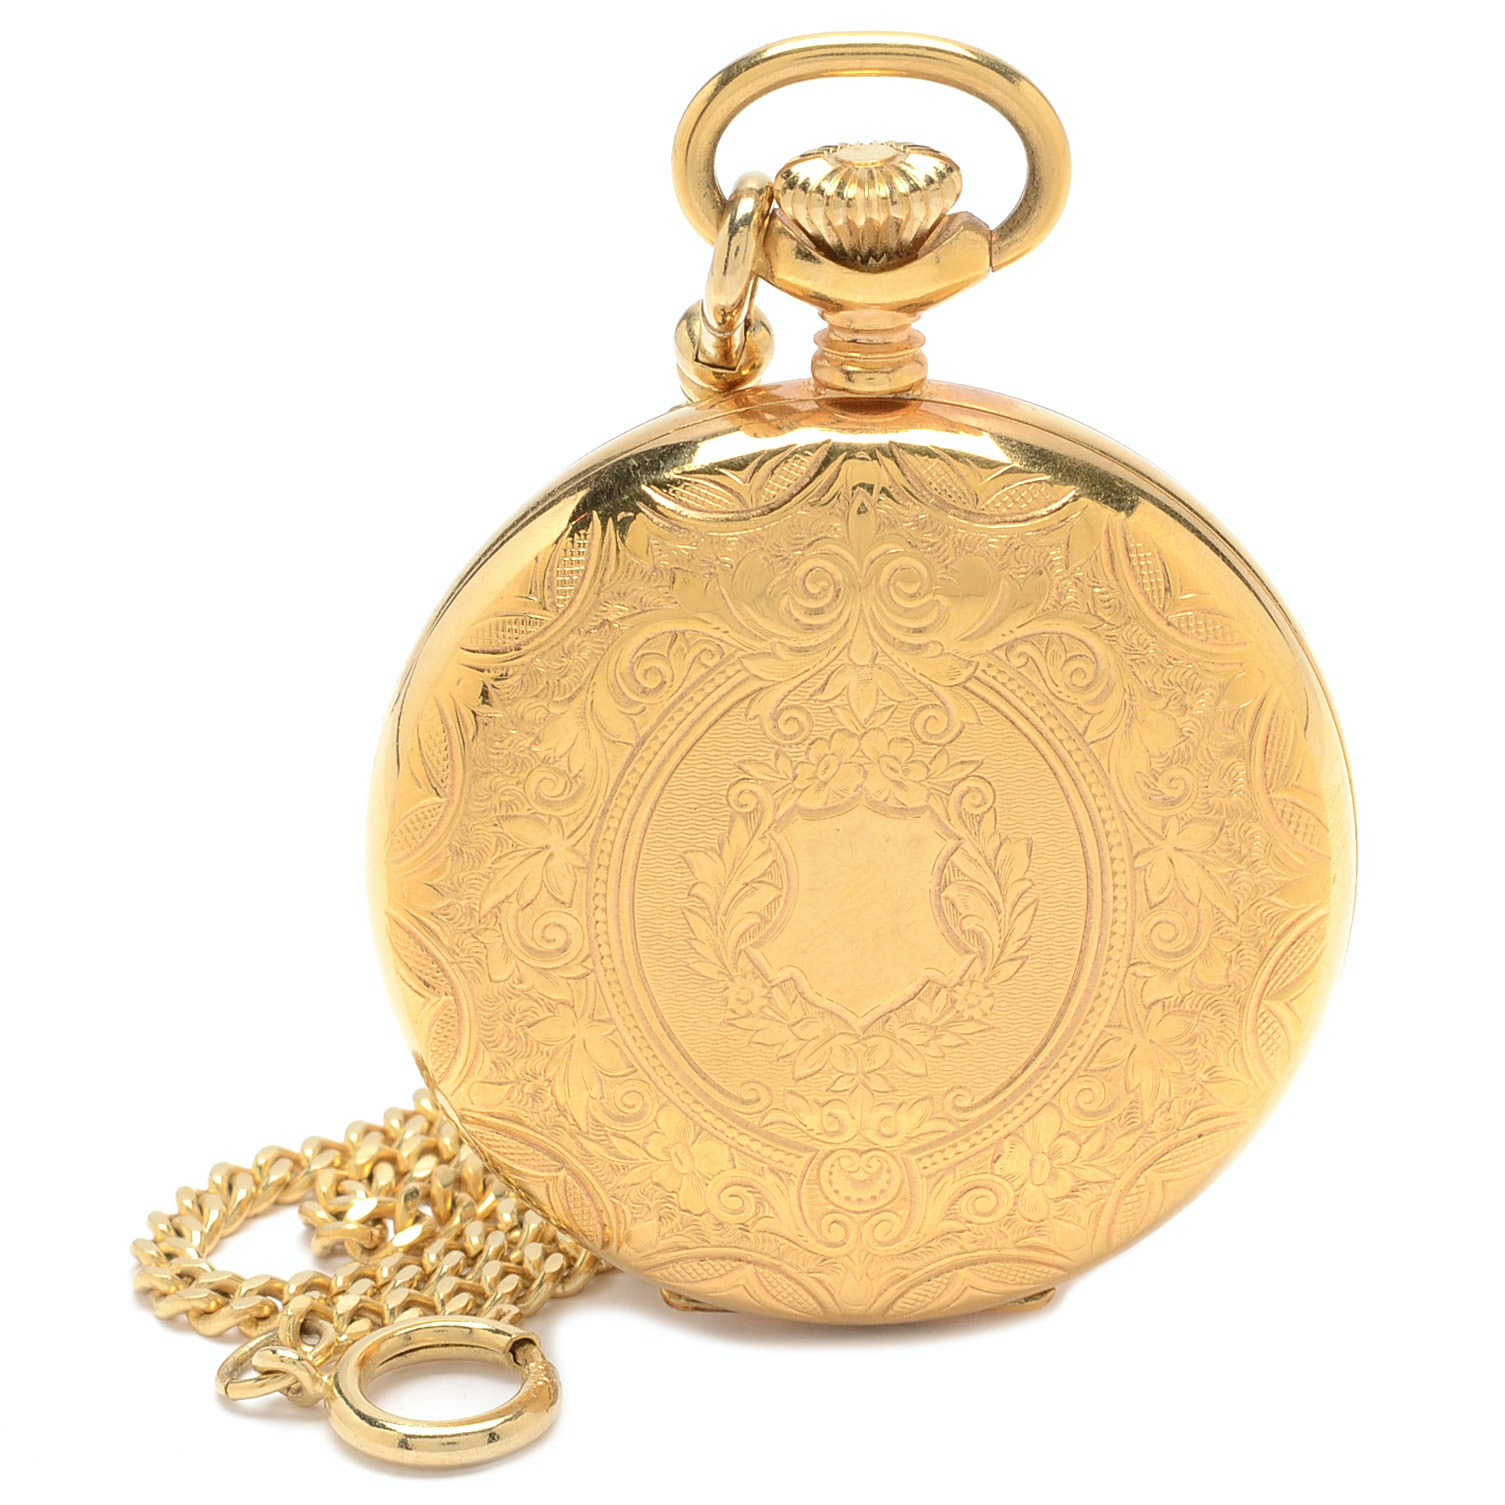 Arnex Hunting Case Pocket Watch with Fob